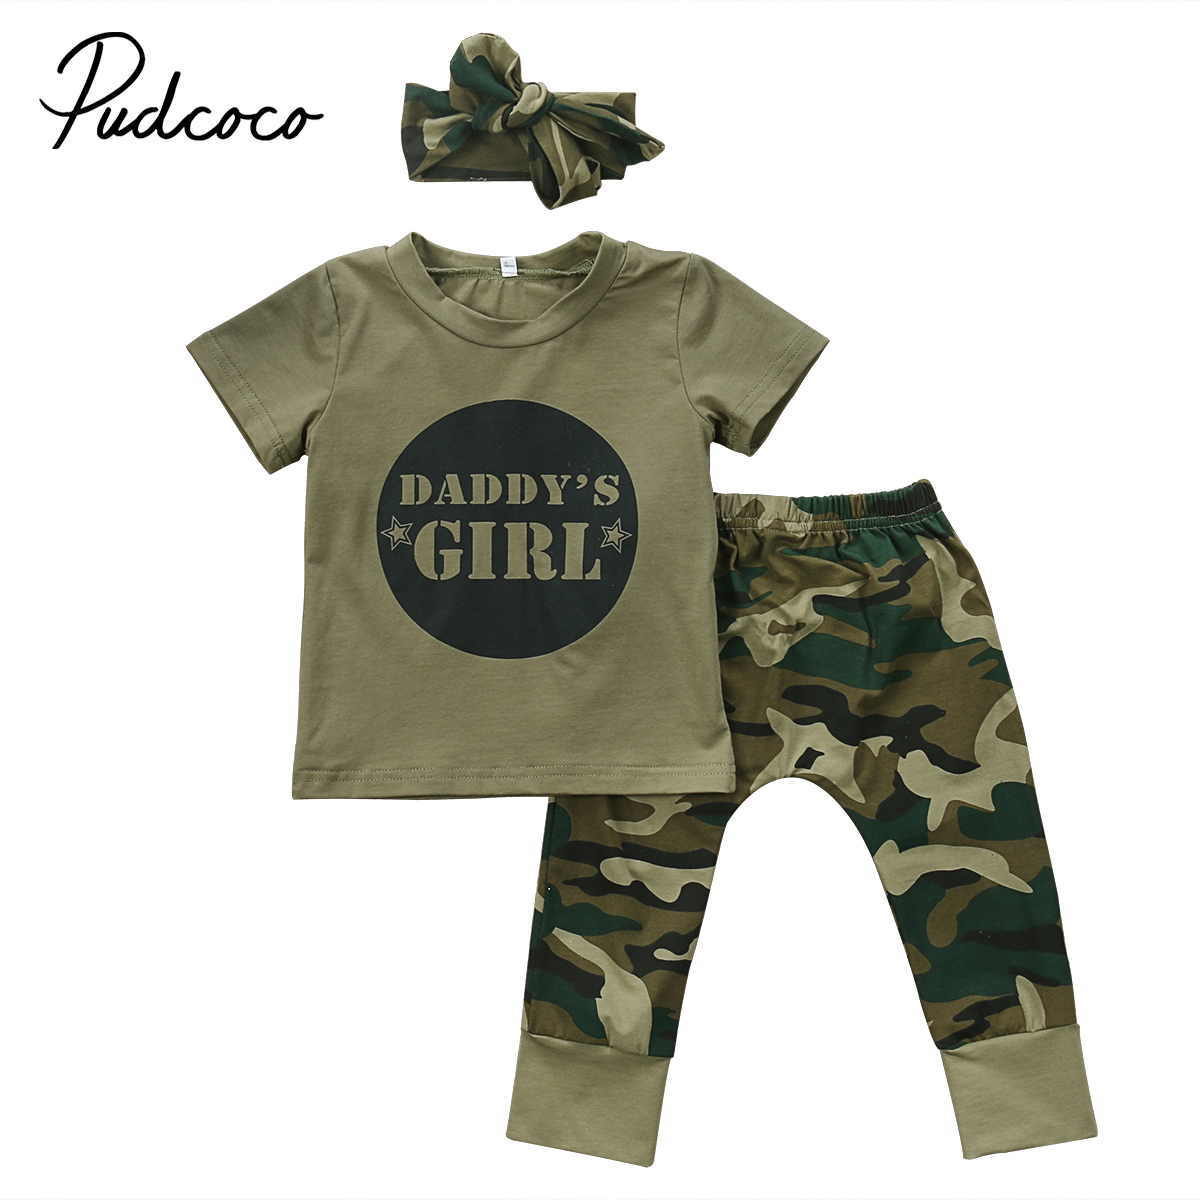 Summer Newborn Baby Boy Girls Camouflage T-shirt Tops+Pants Outfits Set Clothes Army Green Children Letters Print Clothing 0-24M ahd m l video camera security 1 0mp sensor 720p cmos hd analog 960h camara vigilancia vandalproof 24pcs led osd hd lens ir cut